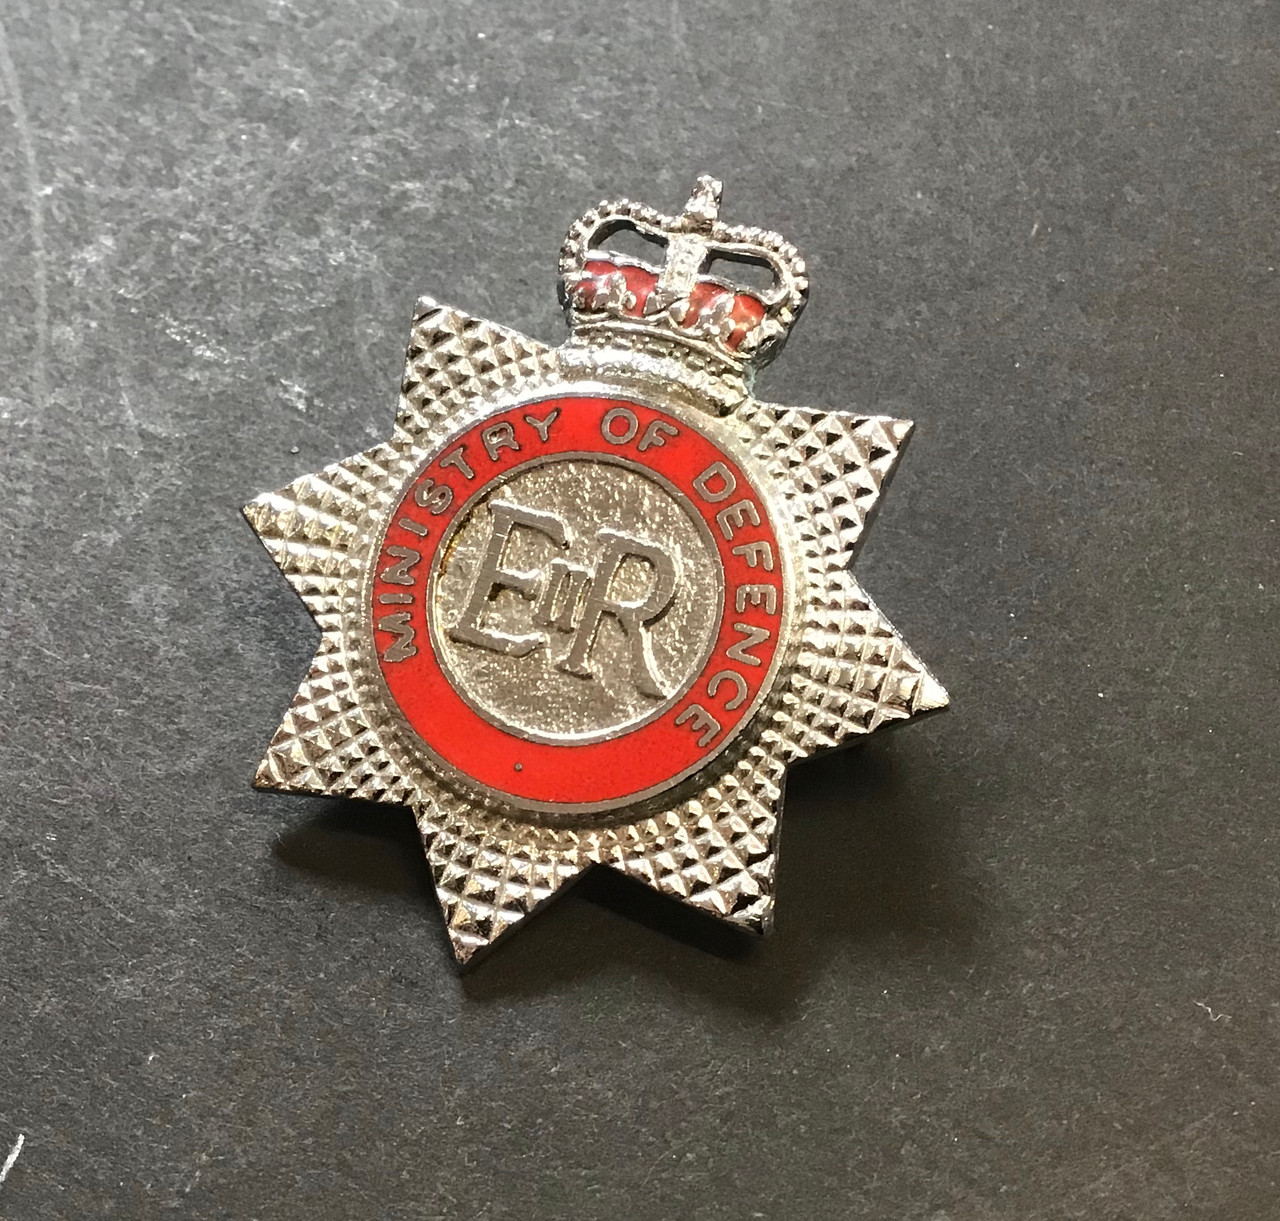 GD 461 MINISTRY OF DEFENCE FIRE SERVICE CAP BADGE